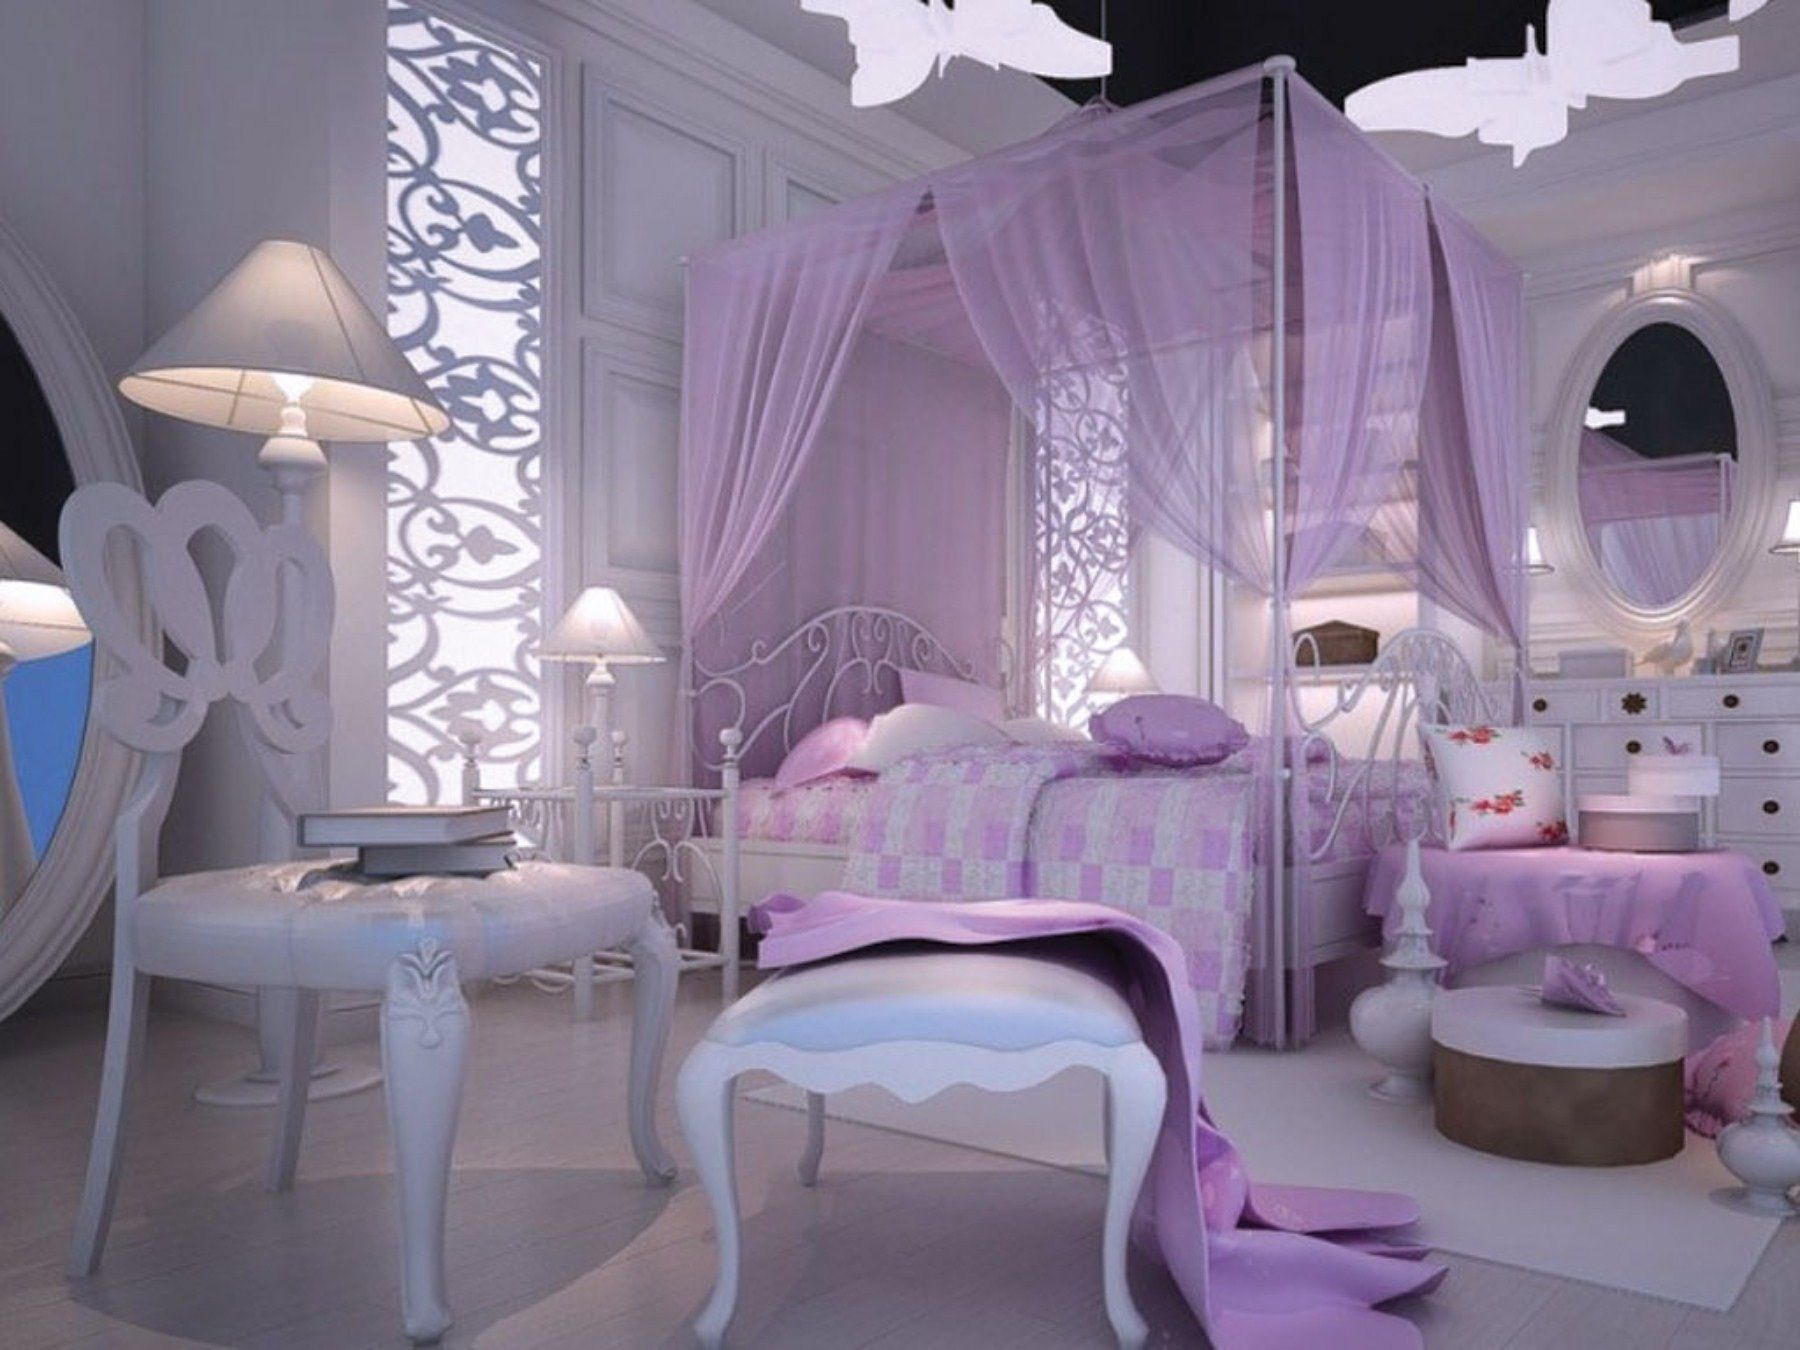 25 images in modern simple yet fascinating bedroom design on cute bedroom decor ideas for teen romantic bedroom decorating with light and color id=88835